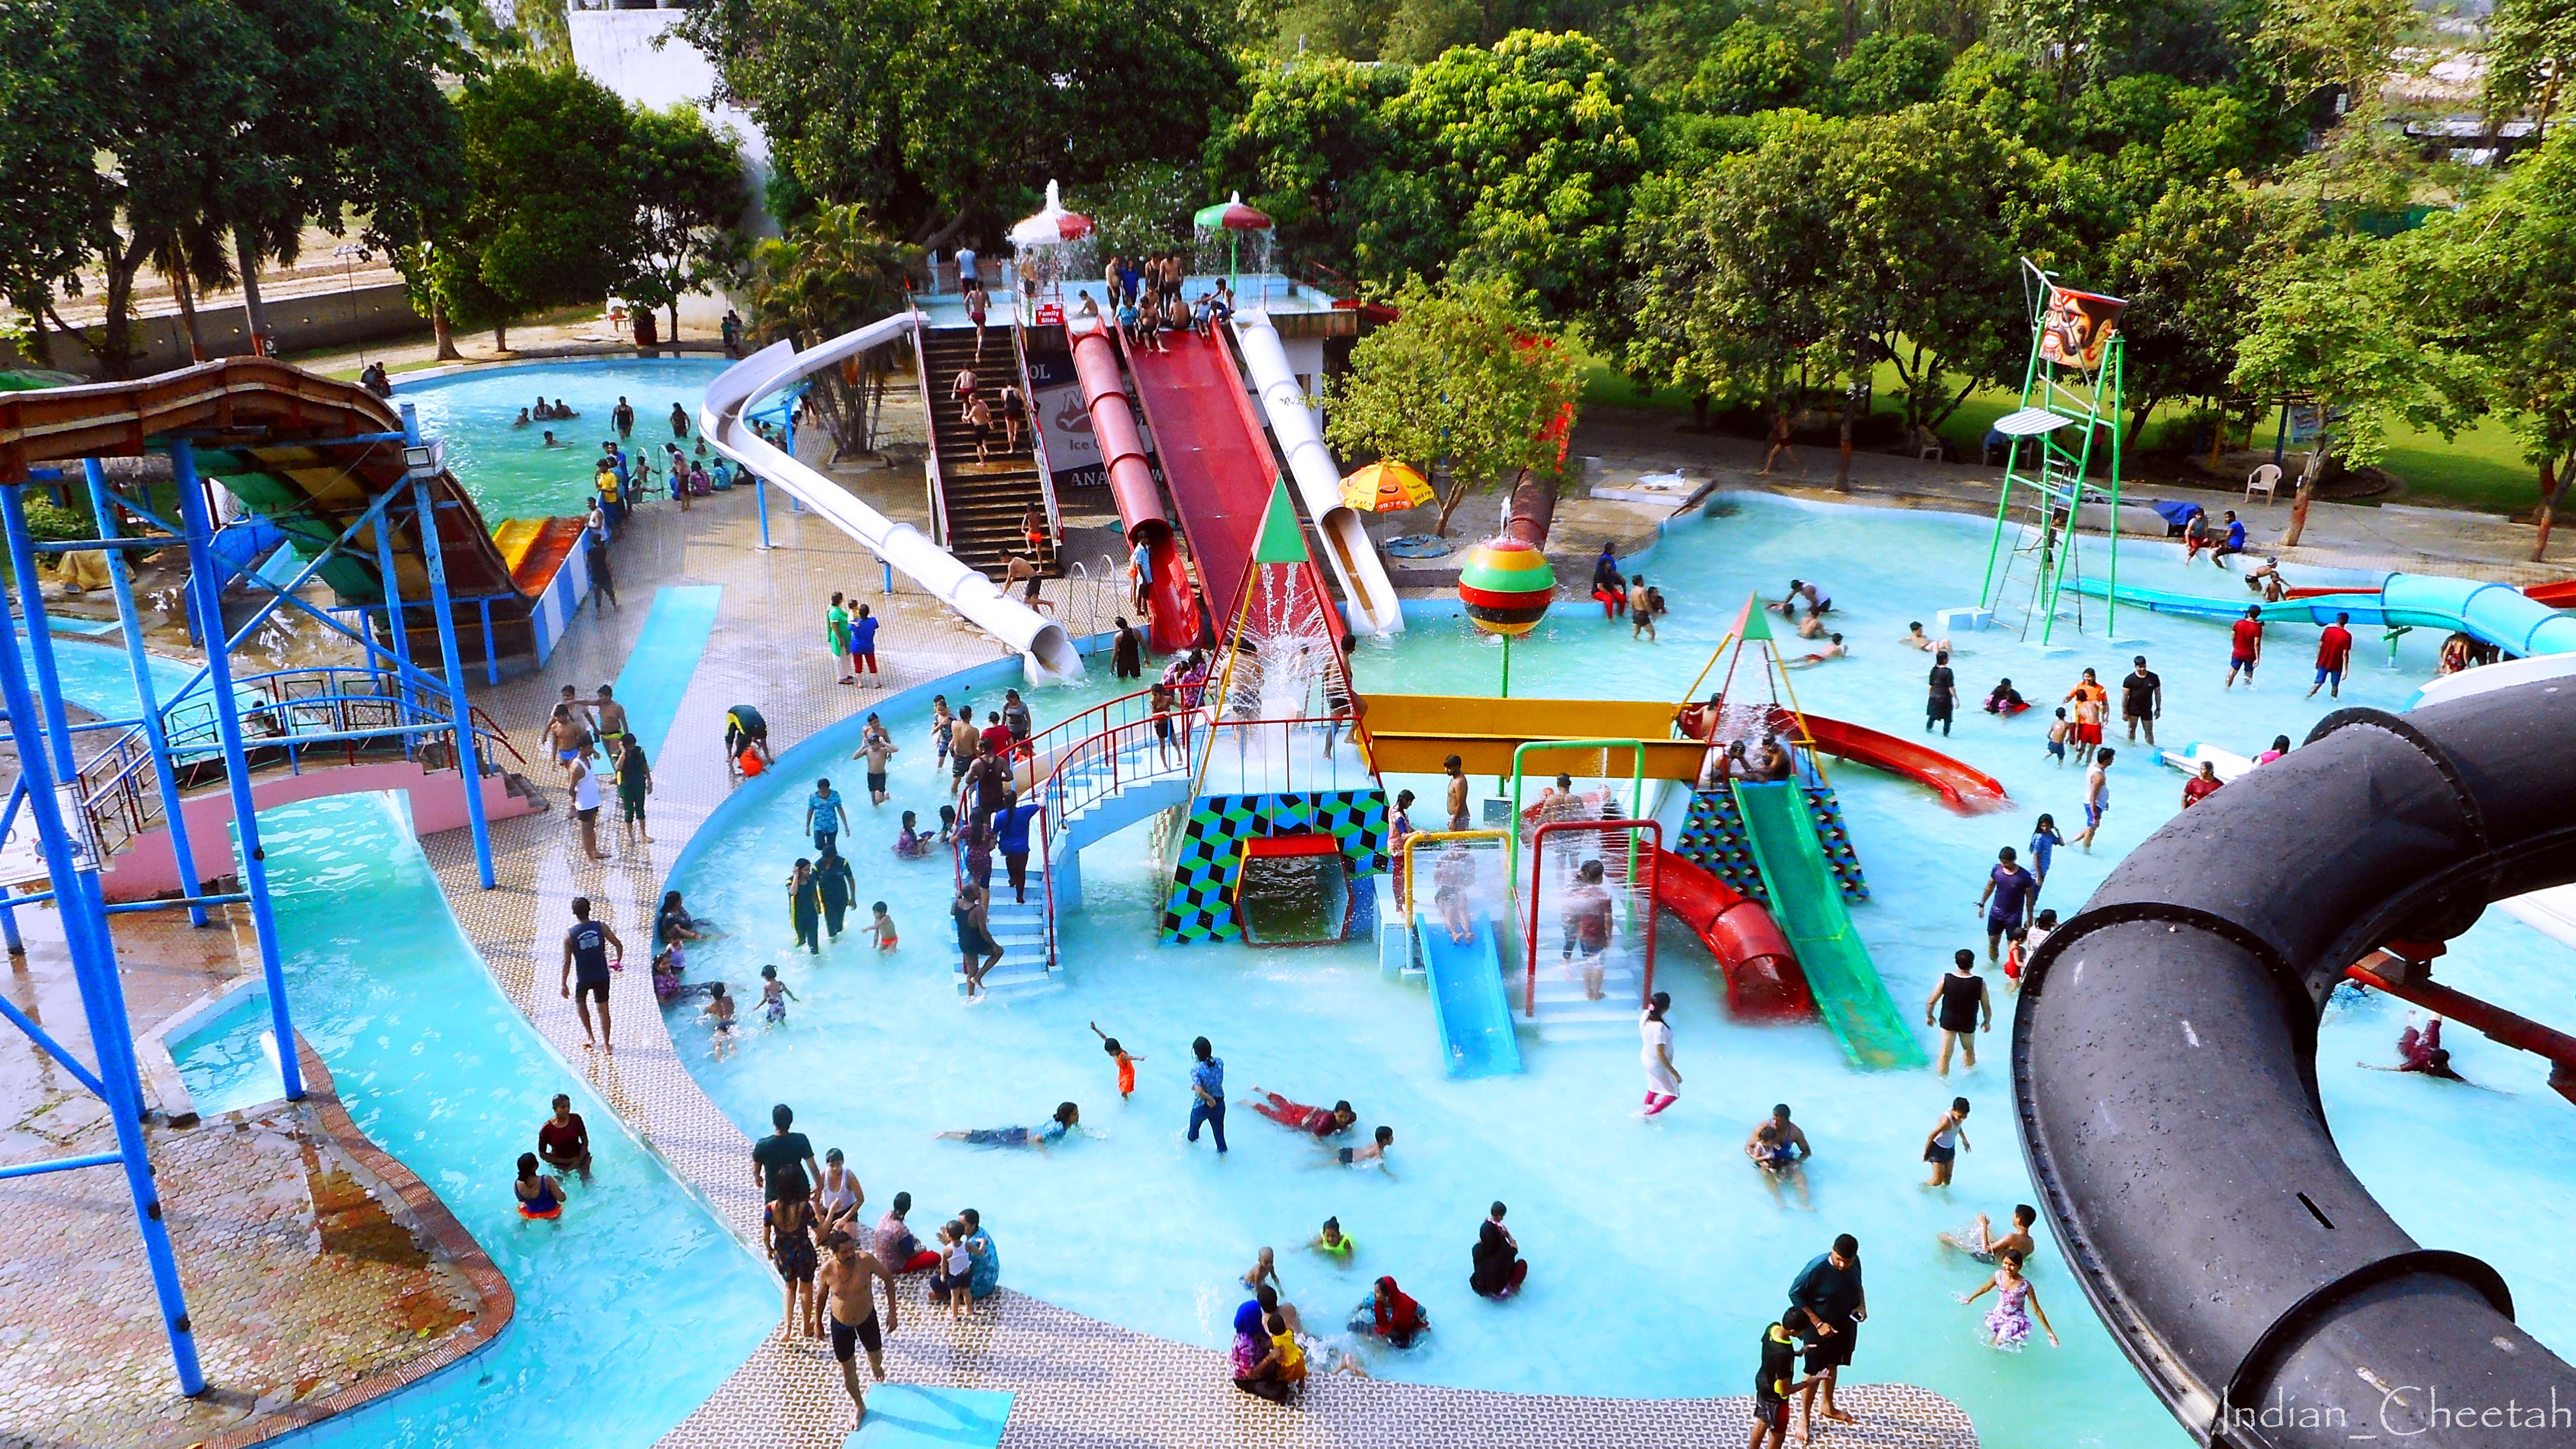 Located around 22 km. from city center (Charbagh), Anandi Water amusement park is a delight on a hot summer afternoon.